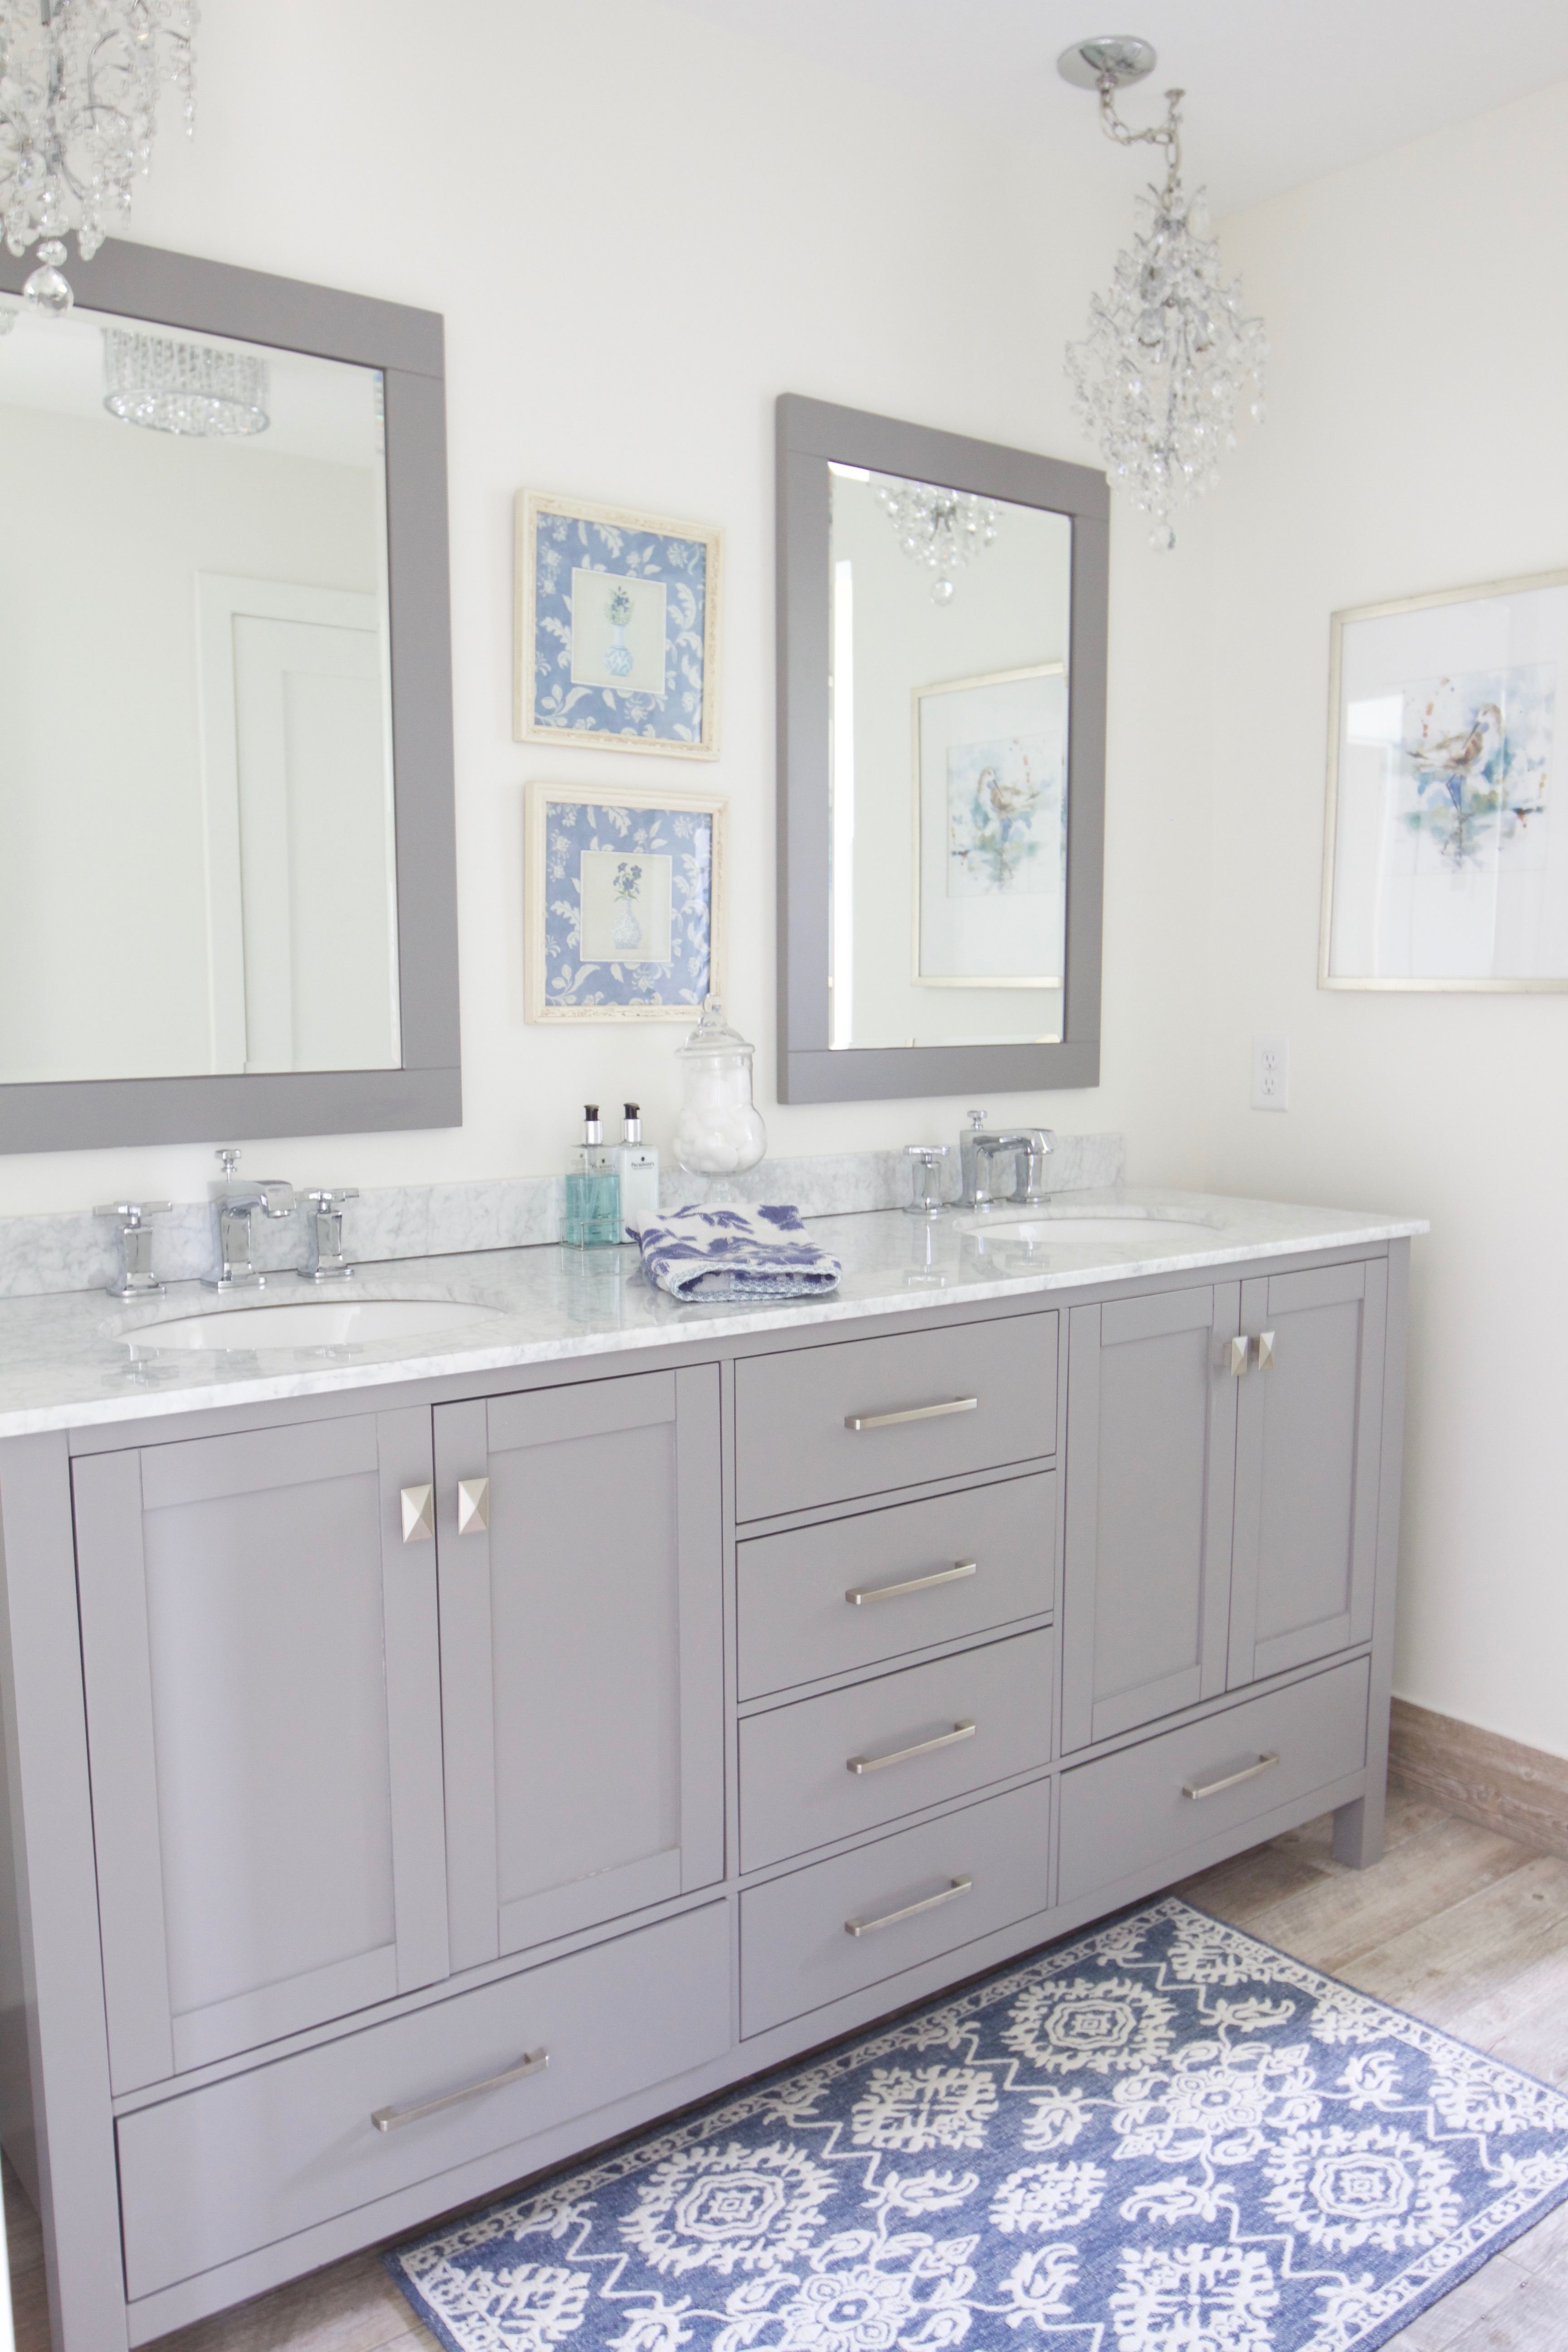 Lake Home Remodel Bathroom Reveal Styled With Lace - Bathroom maker